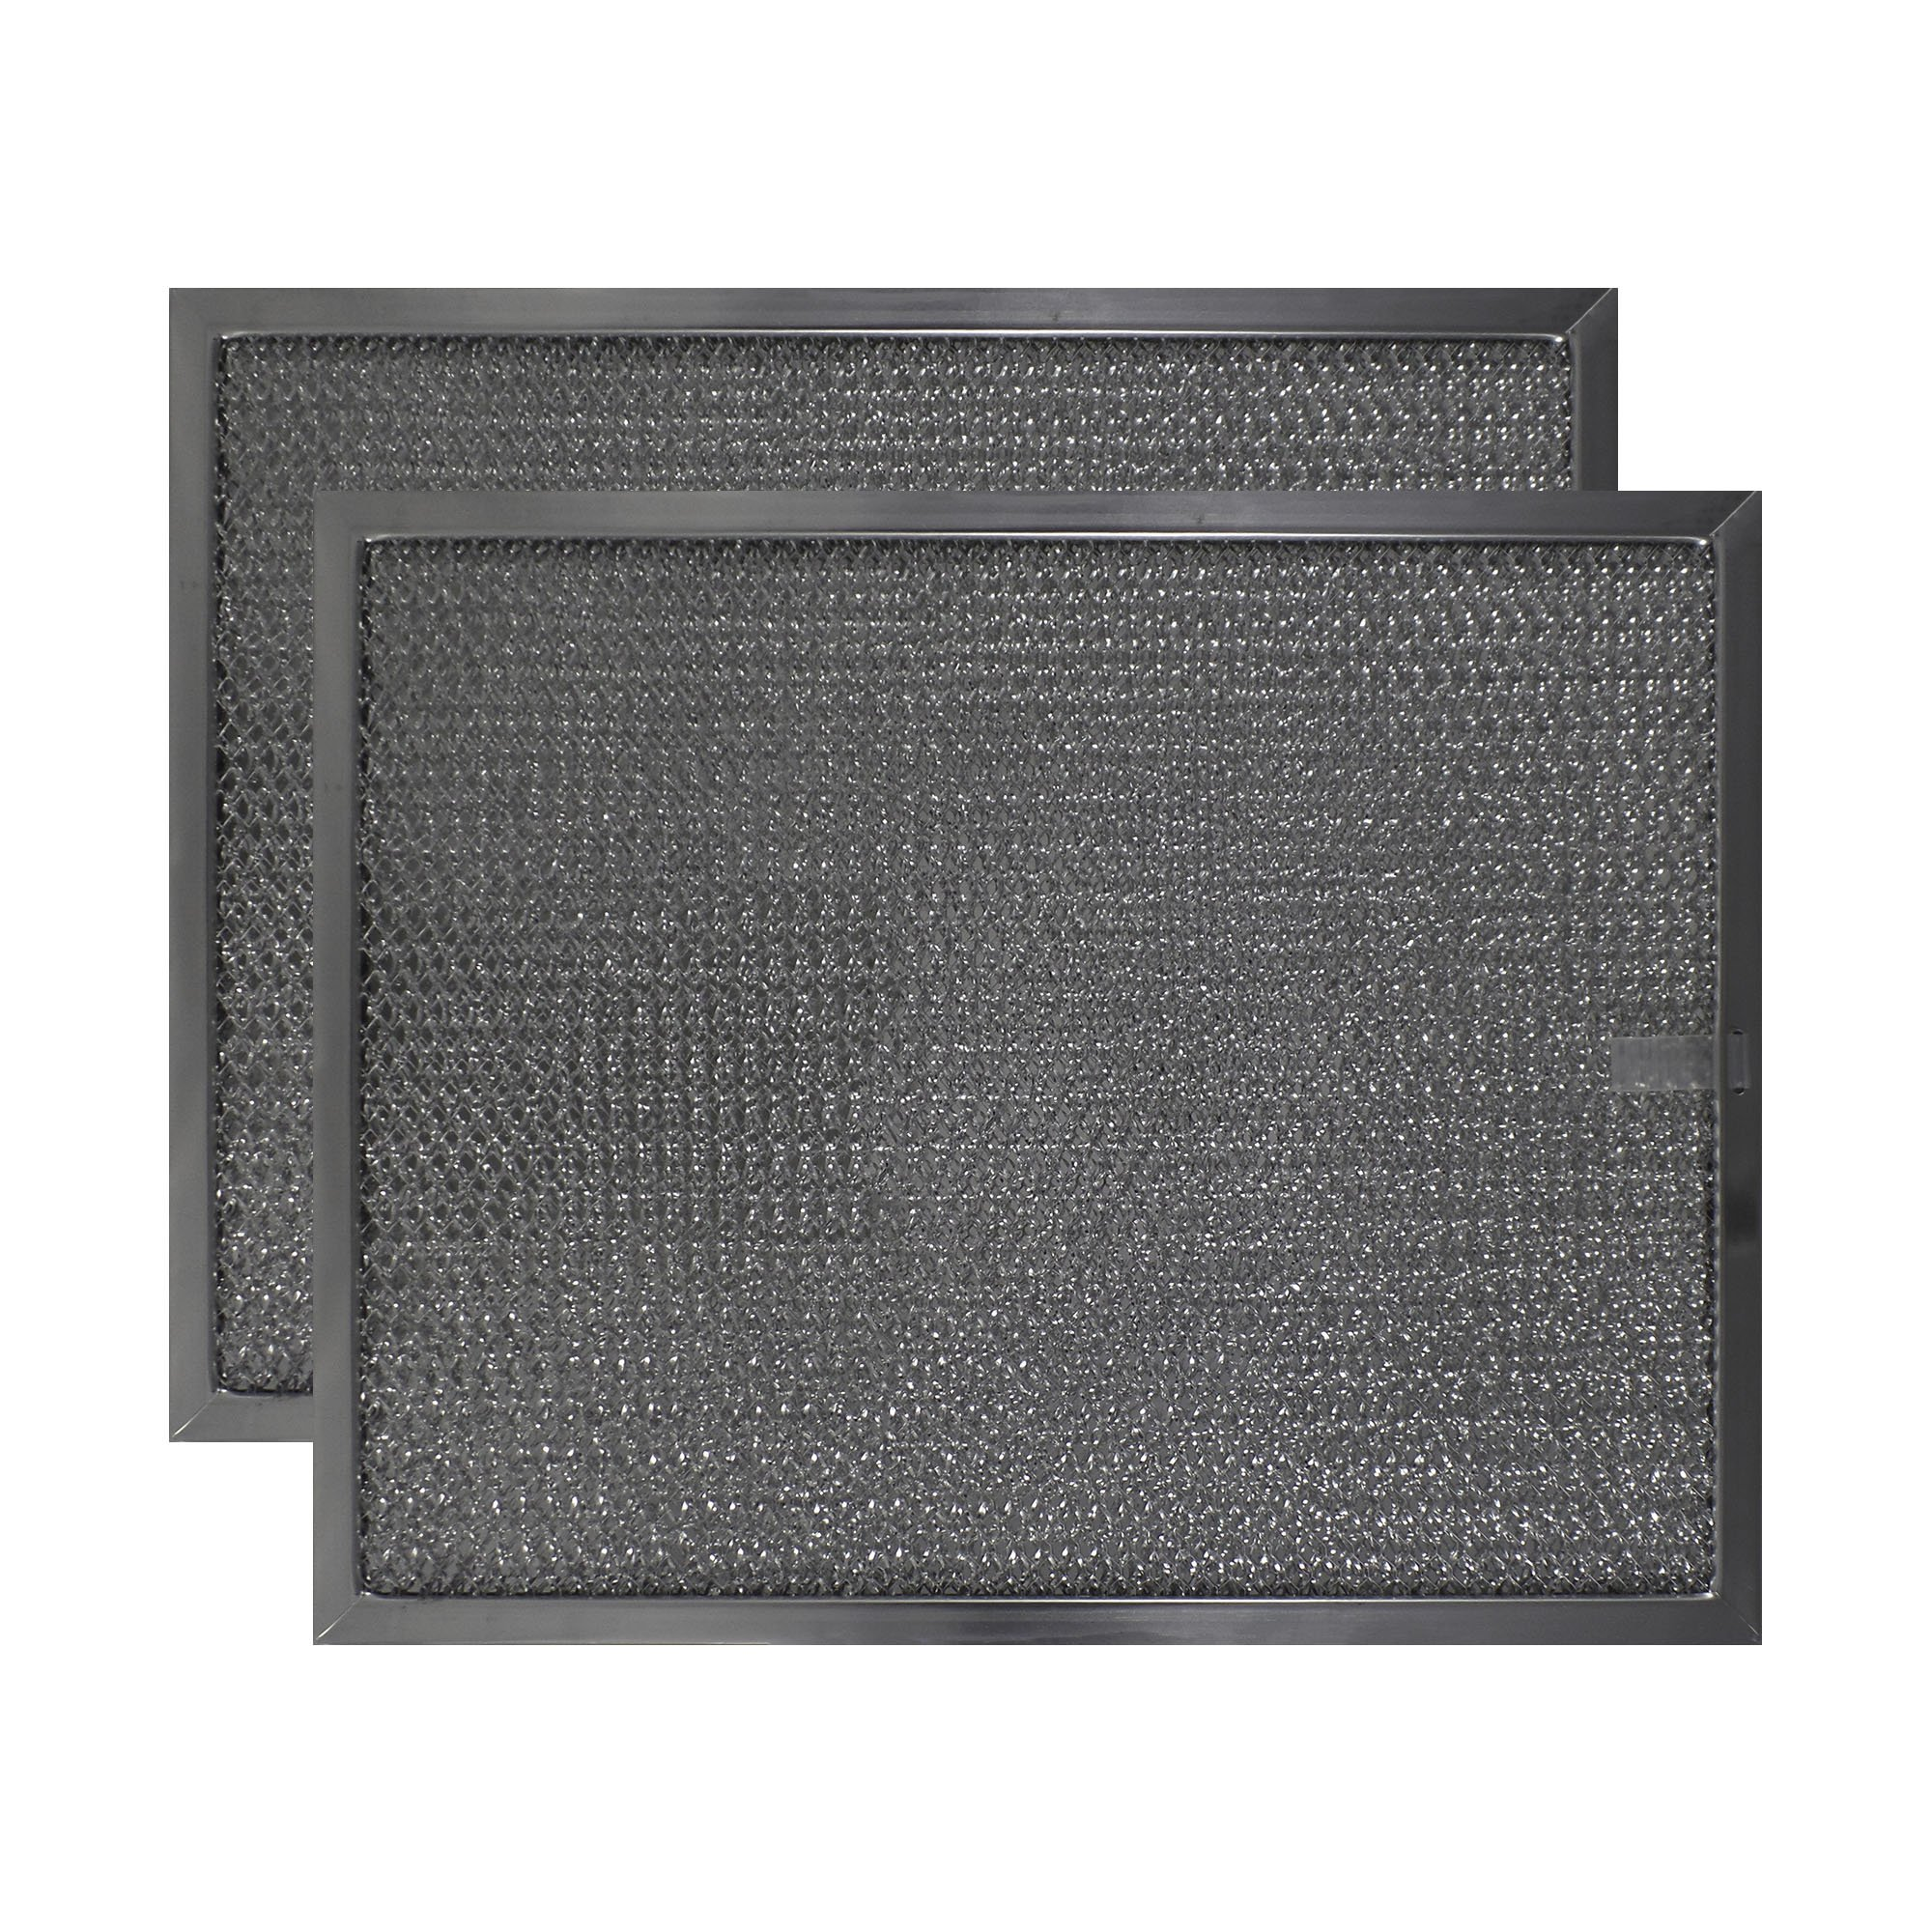 2 PACK Air Filter Factory 11 X 13-3/4 X 3/8 Range Hood Aluminum Grease Filters AFF162-M by Air Filter Factory